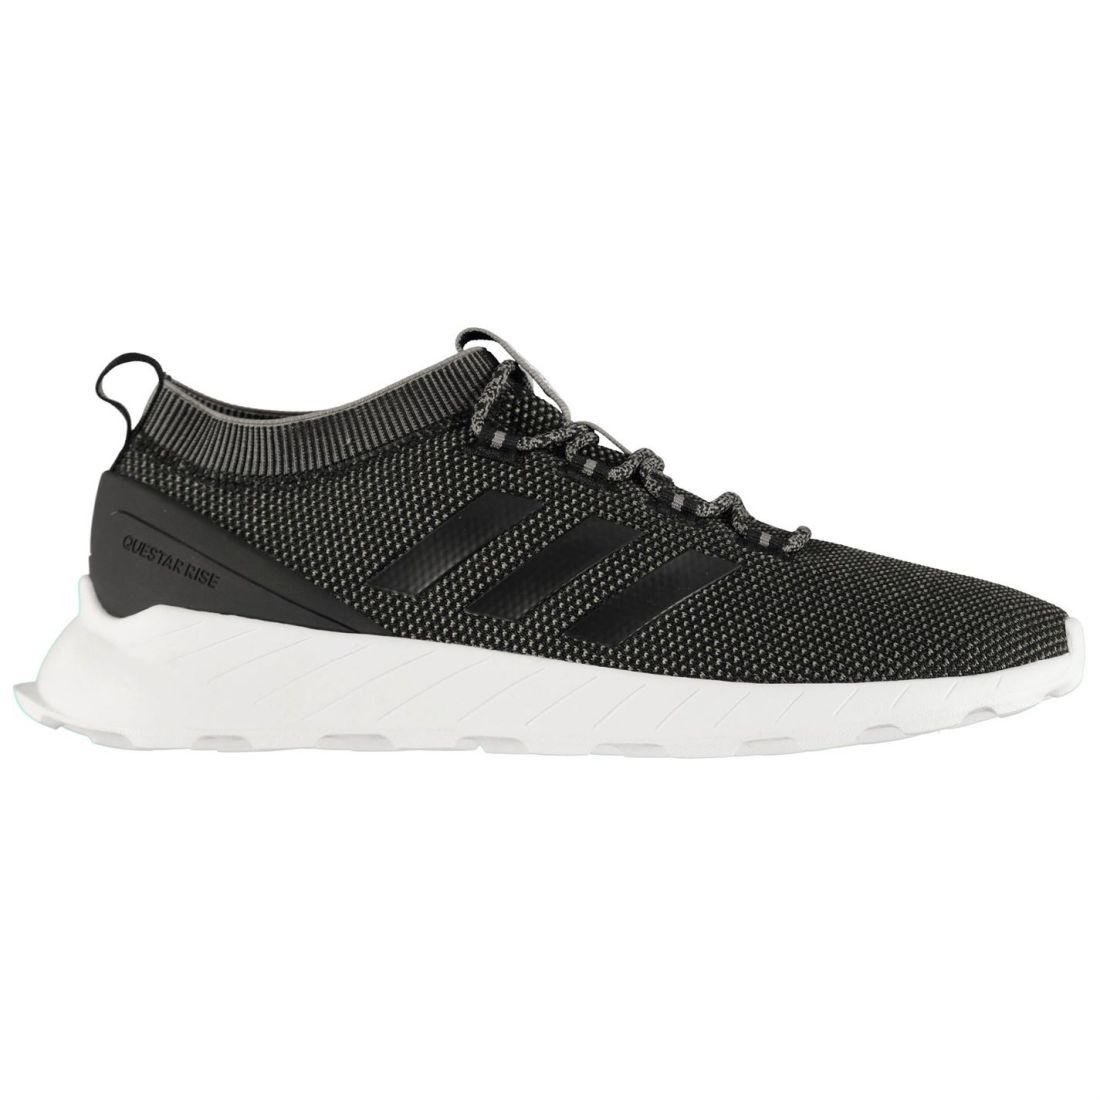 Adidas Questar Rise Sneakers Mens Gents Runners Laces Fastened Ventilated